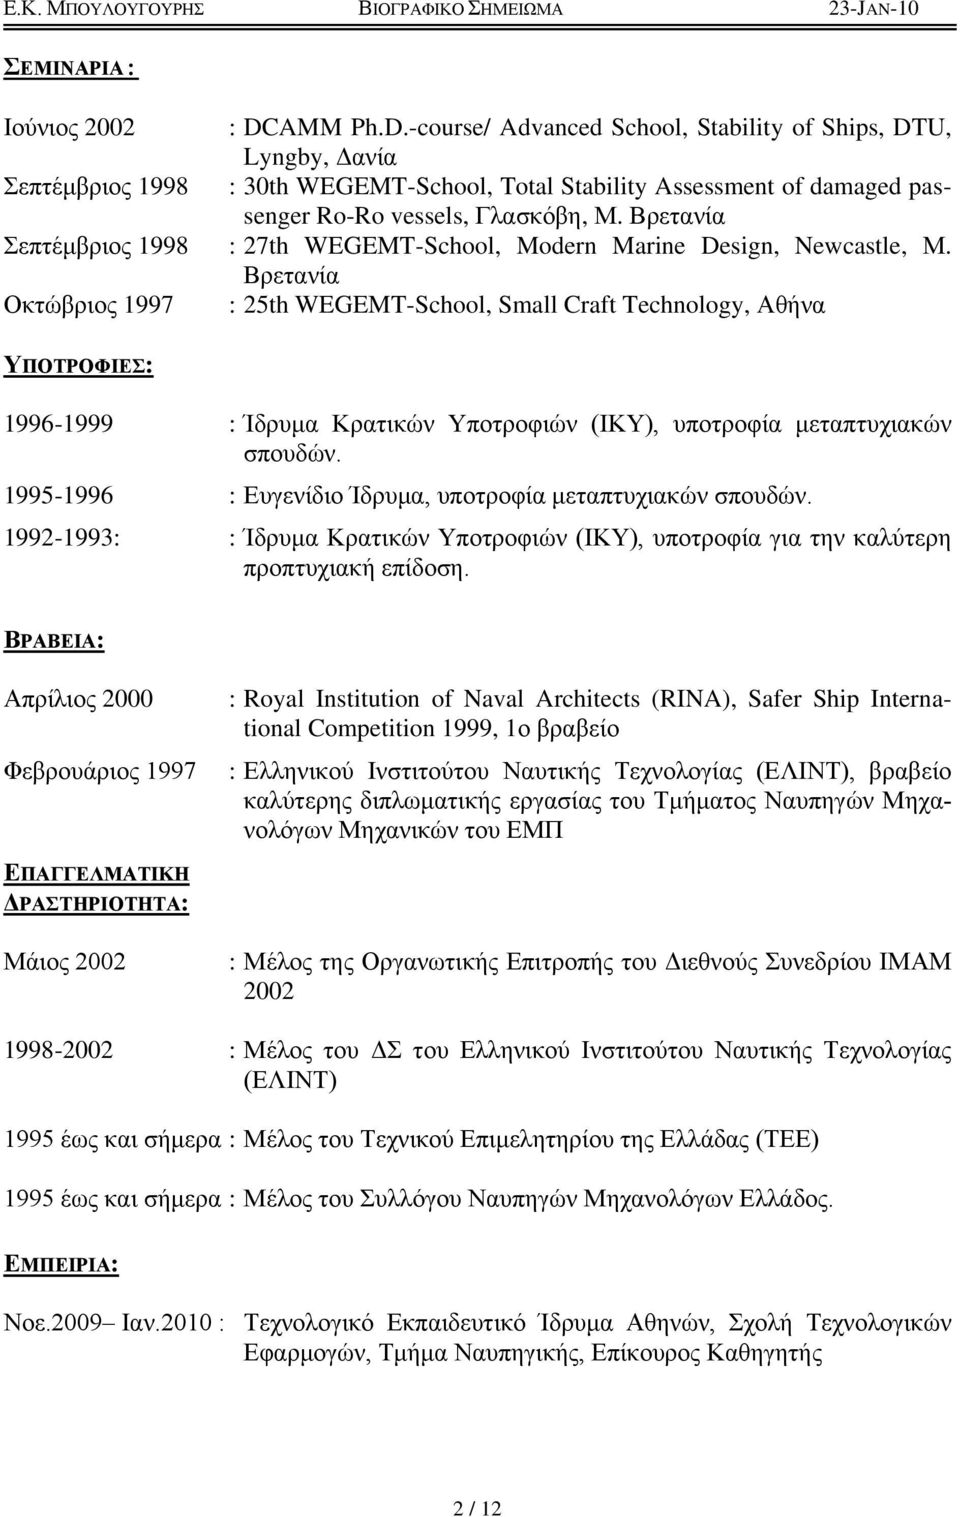 Βπεηανία επηέμβπιορ 1998 : 27th WEGEMT-School, Modern Marine Design, Newcastle, Μ.